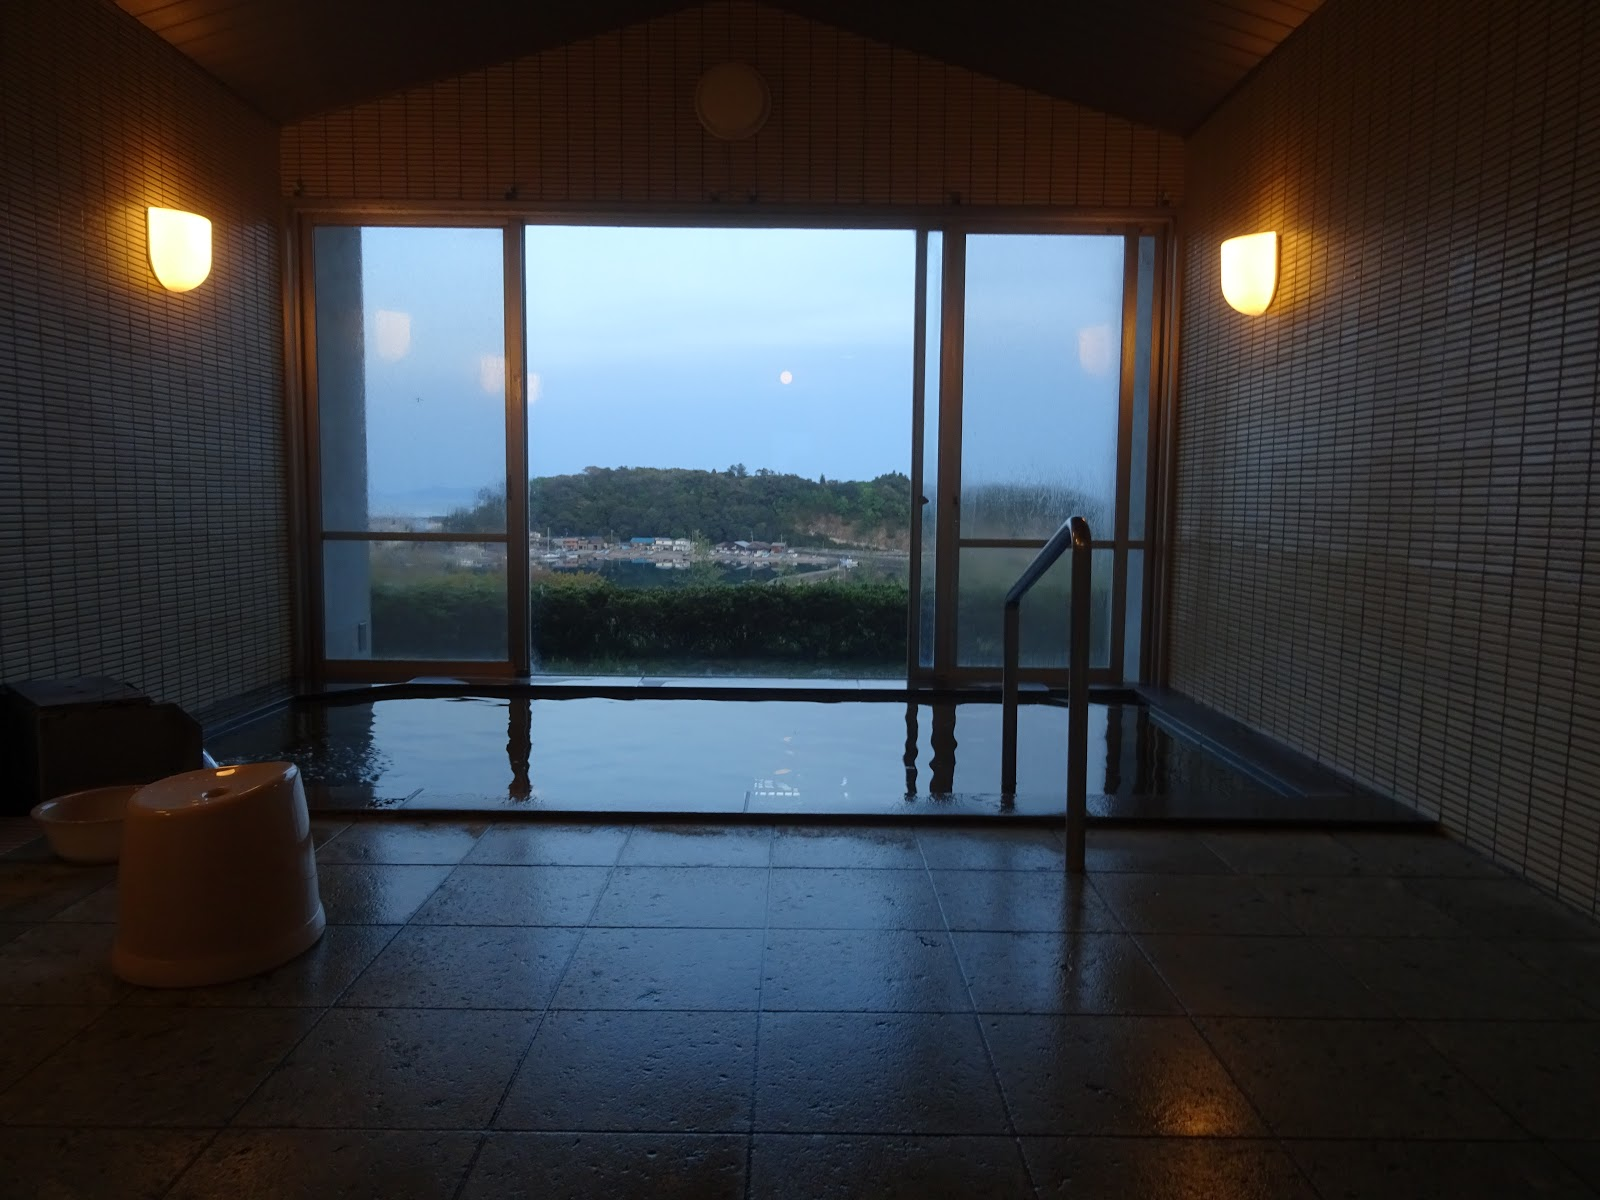 Onsen (Hot Spring) Addict in Japan: Renting Private Baths at Onsens ...